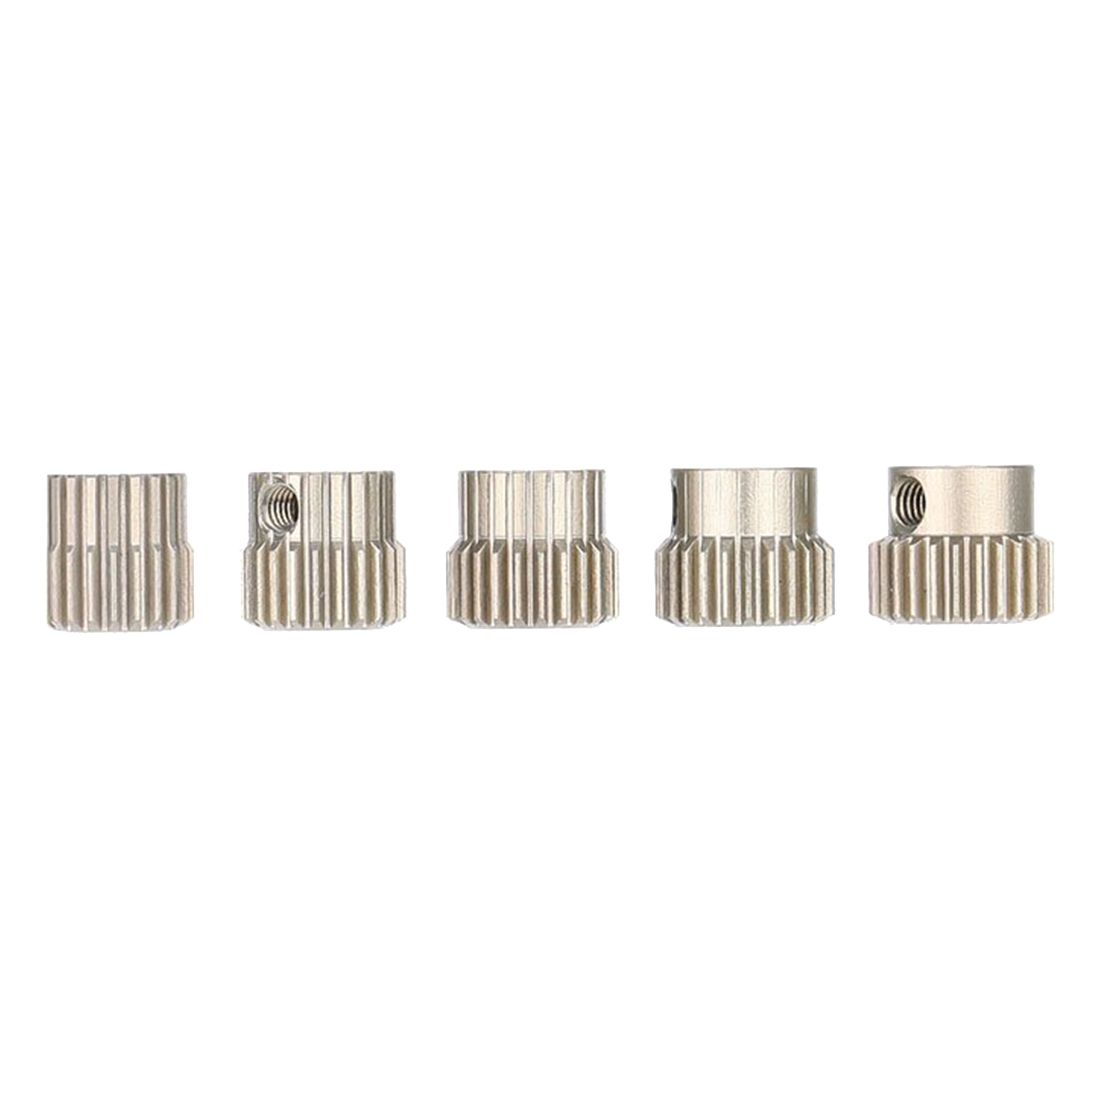 ABWE Best Sale 5pcs 64DP 3.175mm 21T 22T 23T 24T 25T Pinion Motor Gear Set for 1/10 RC Car Brushed Brushless Motor